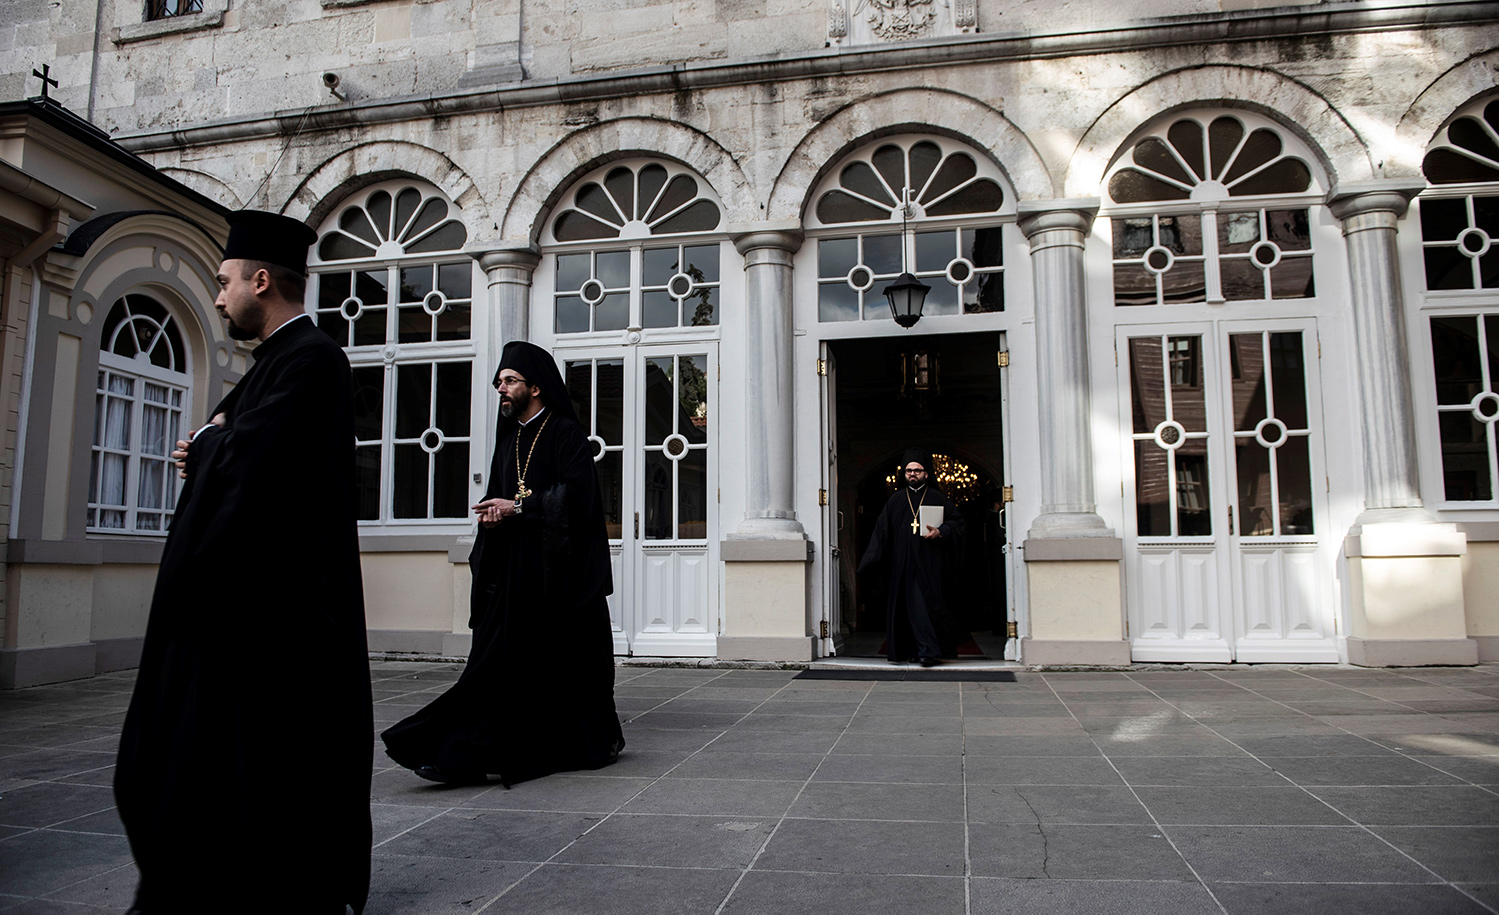 Orthodox officials walk outside the Fener Greek Patriarchate in Istanbul, Turkey on November 03, 2018. Getty.